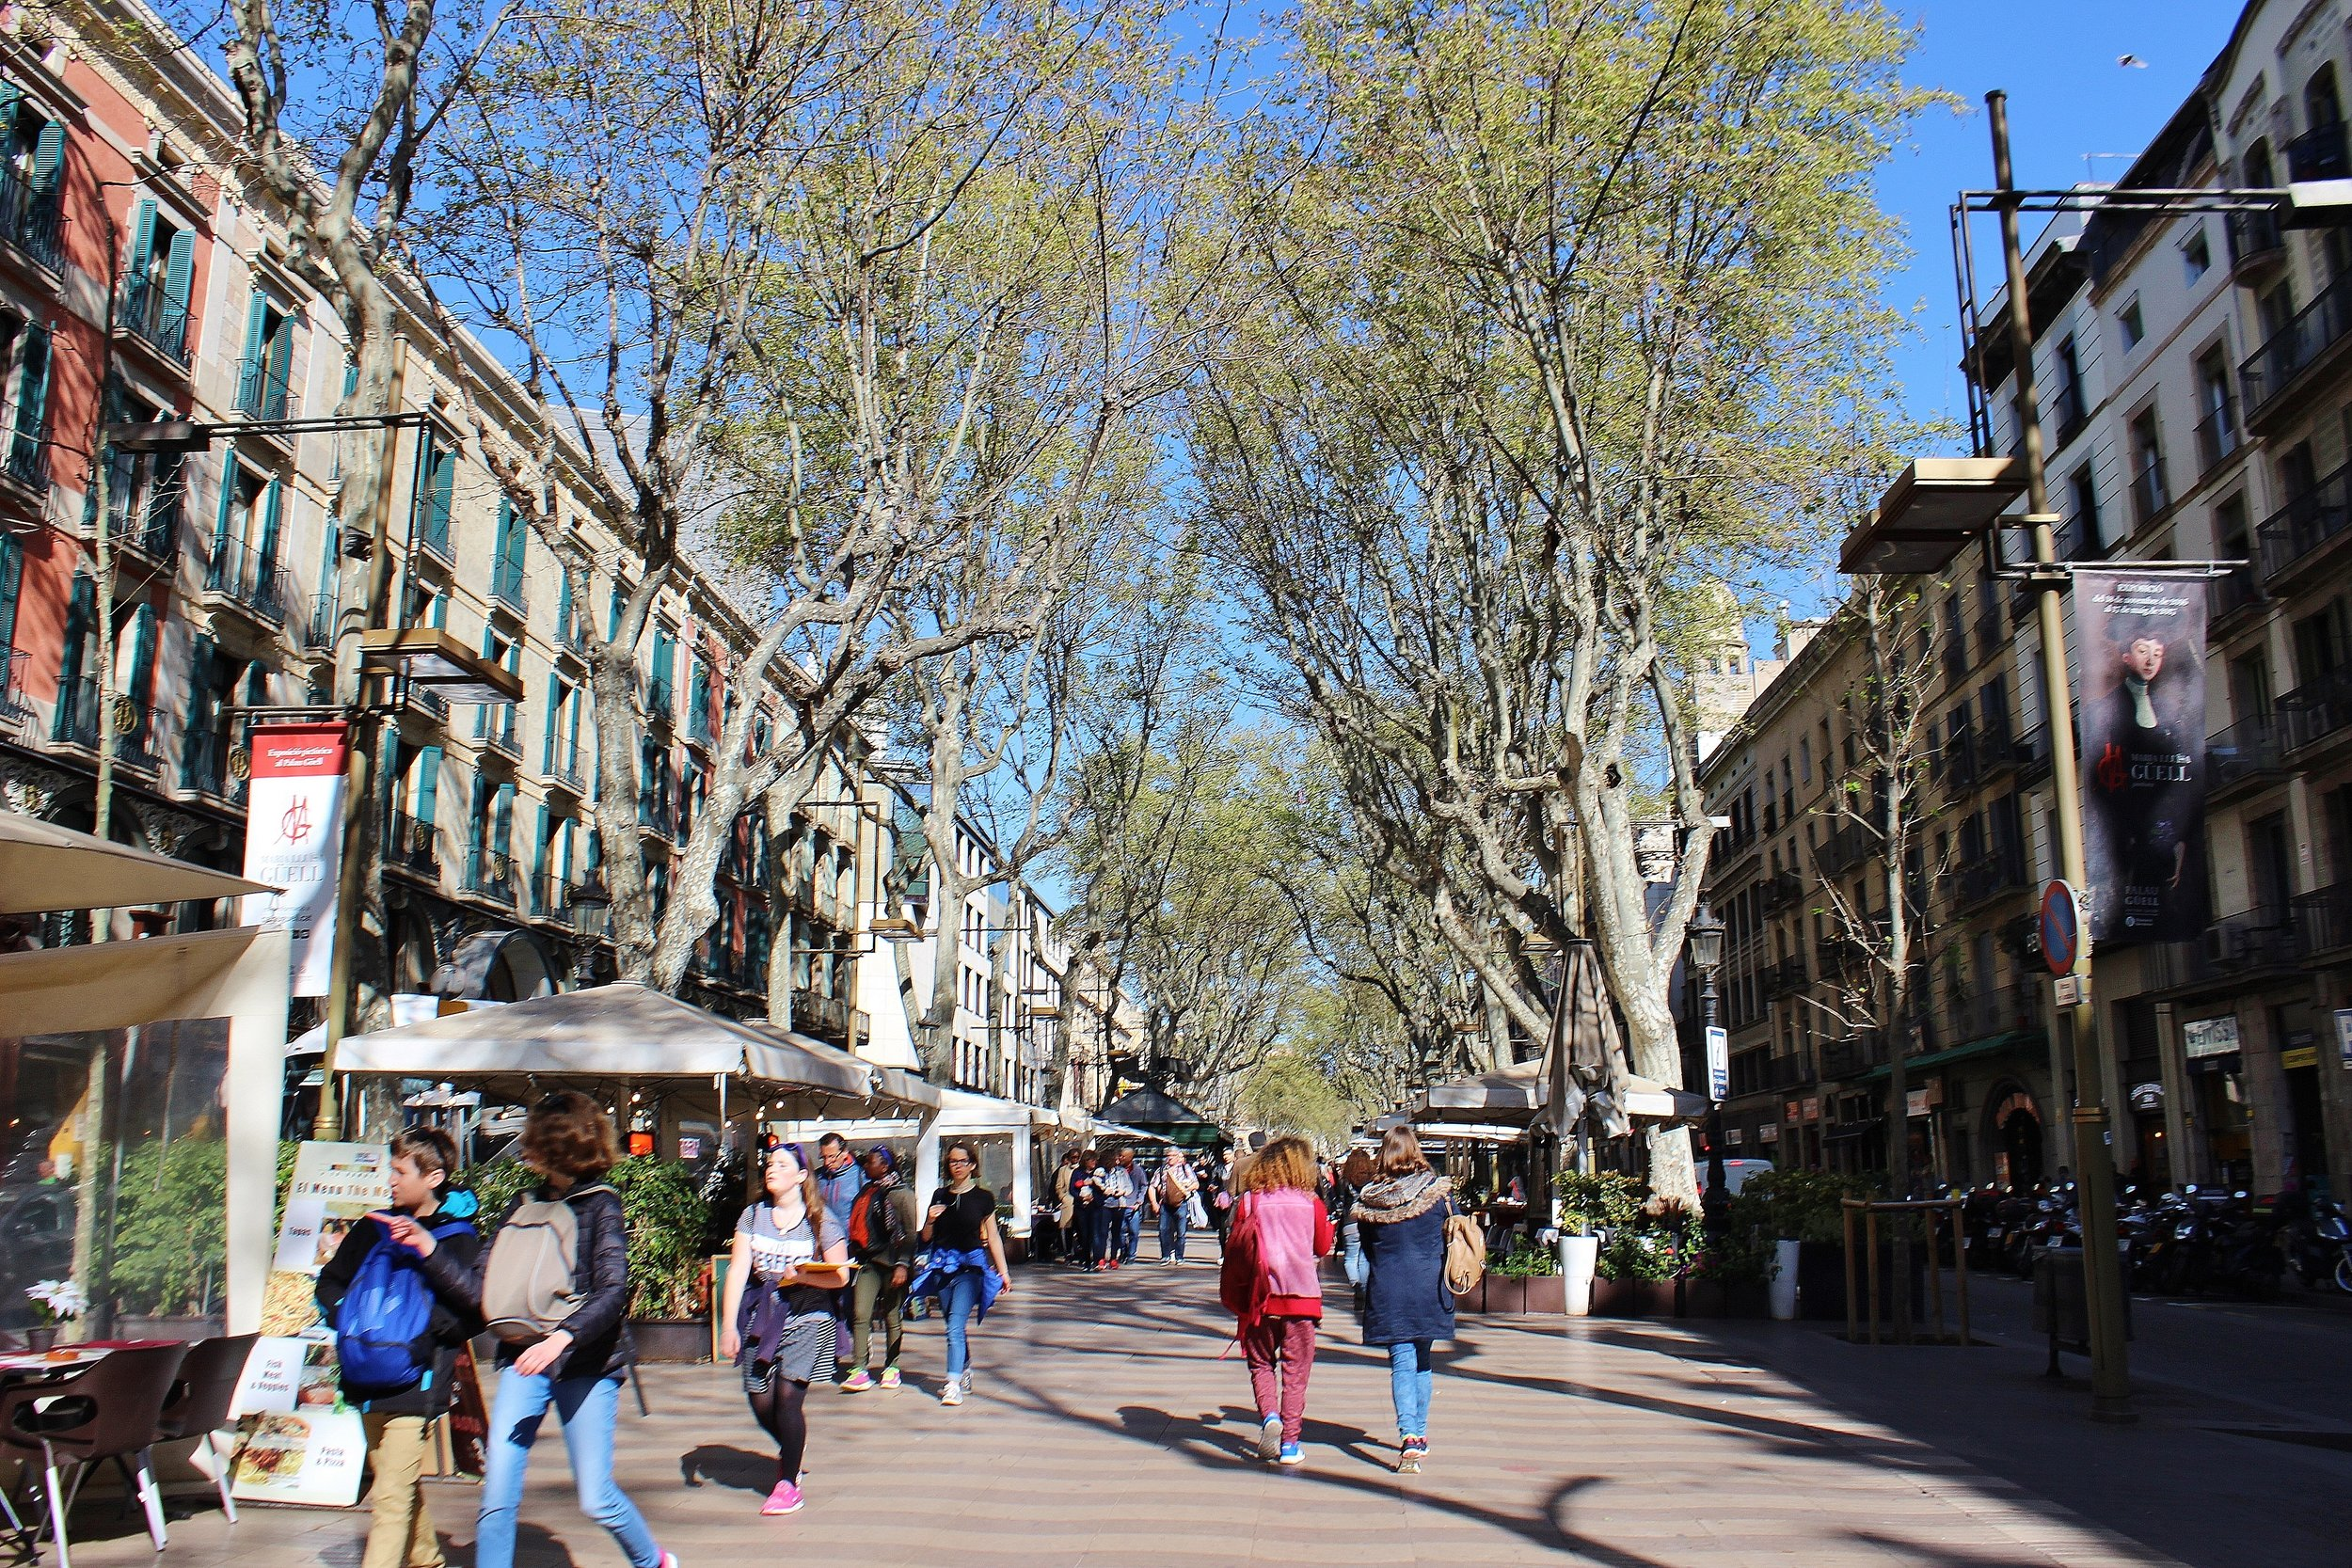 Las Ramblas. This looks unusually empty, but it's cause we tried to be early risers and Barcelonans aren't known for being morning people haha